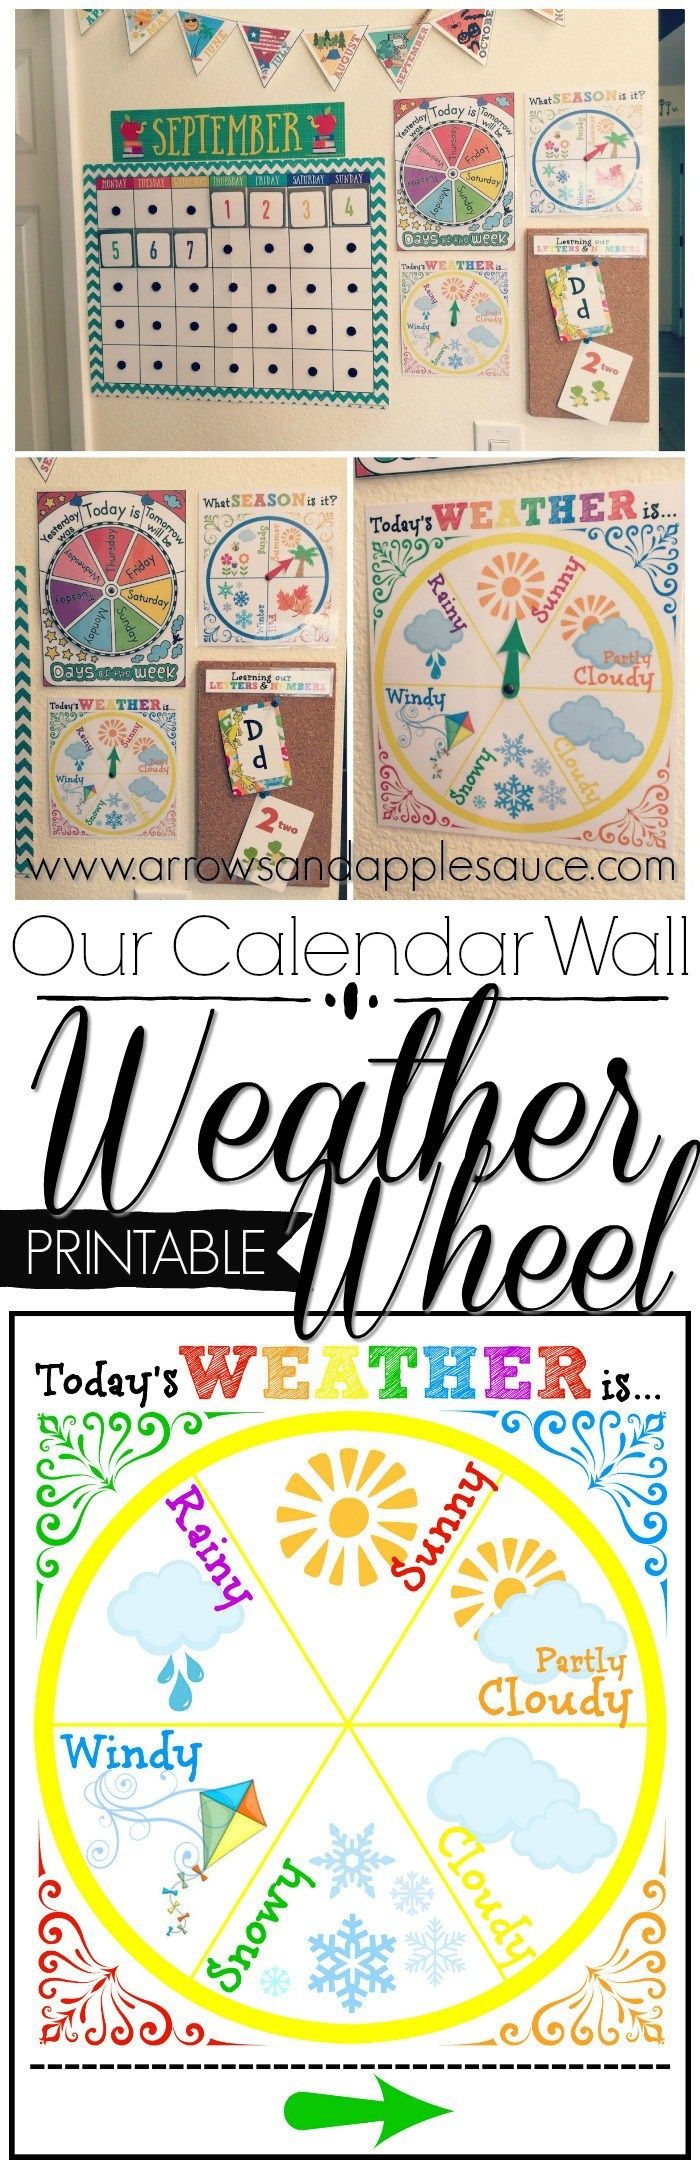 We're learning about the weather with this fun and colorful weather wheel! Perfect for circle time and it looks great on our calendar wall.